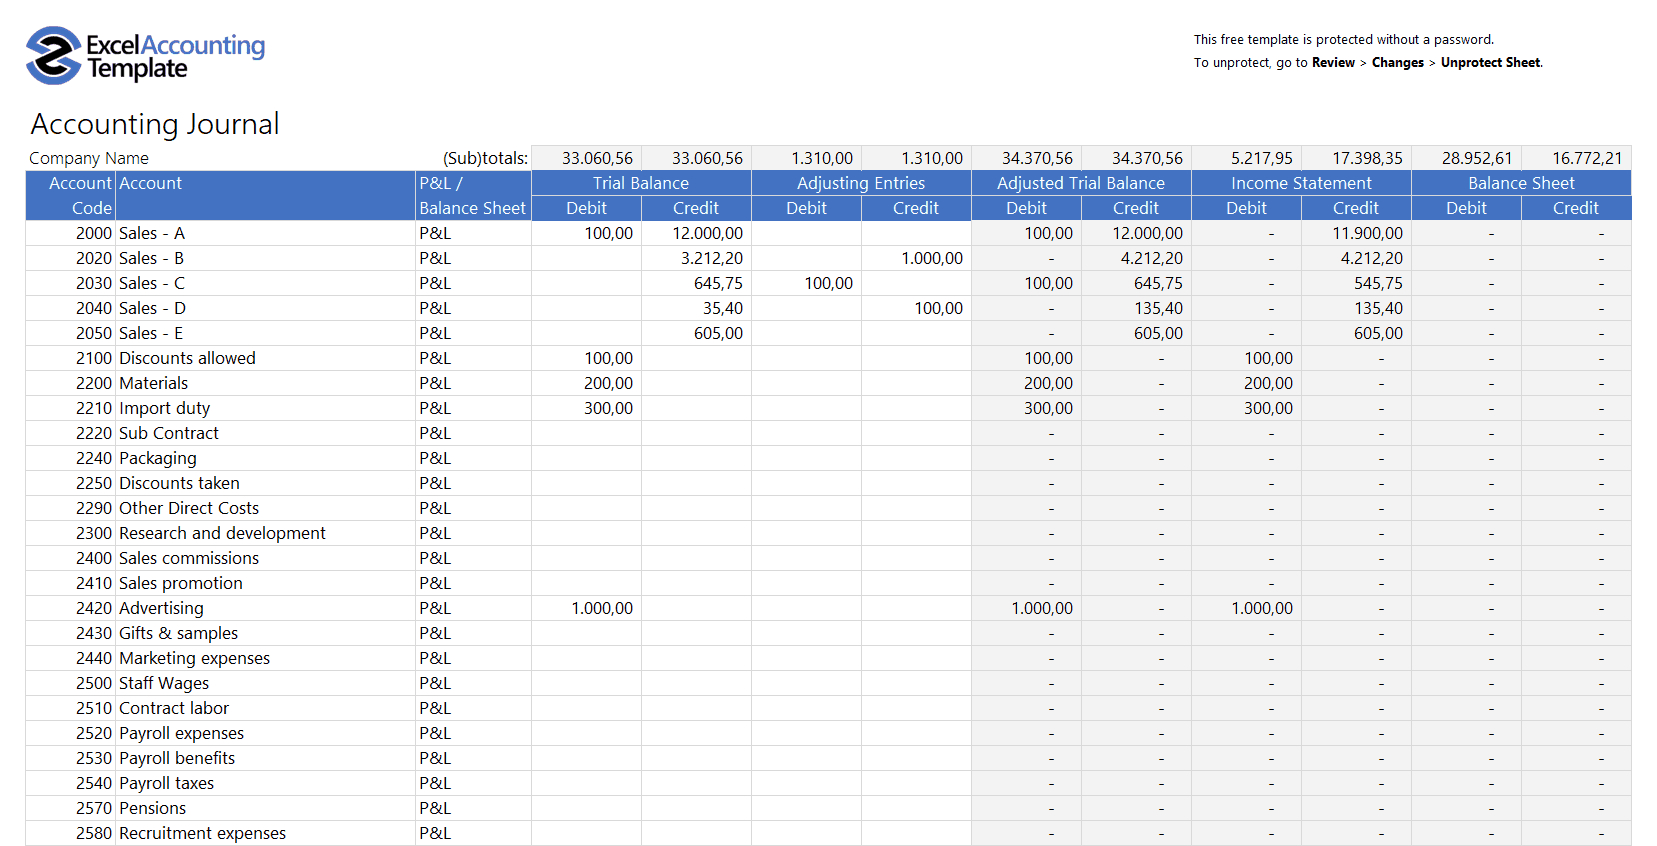 Account Balance Spreadsheet Template Regarding Free